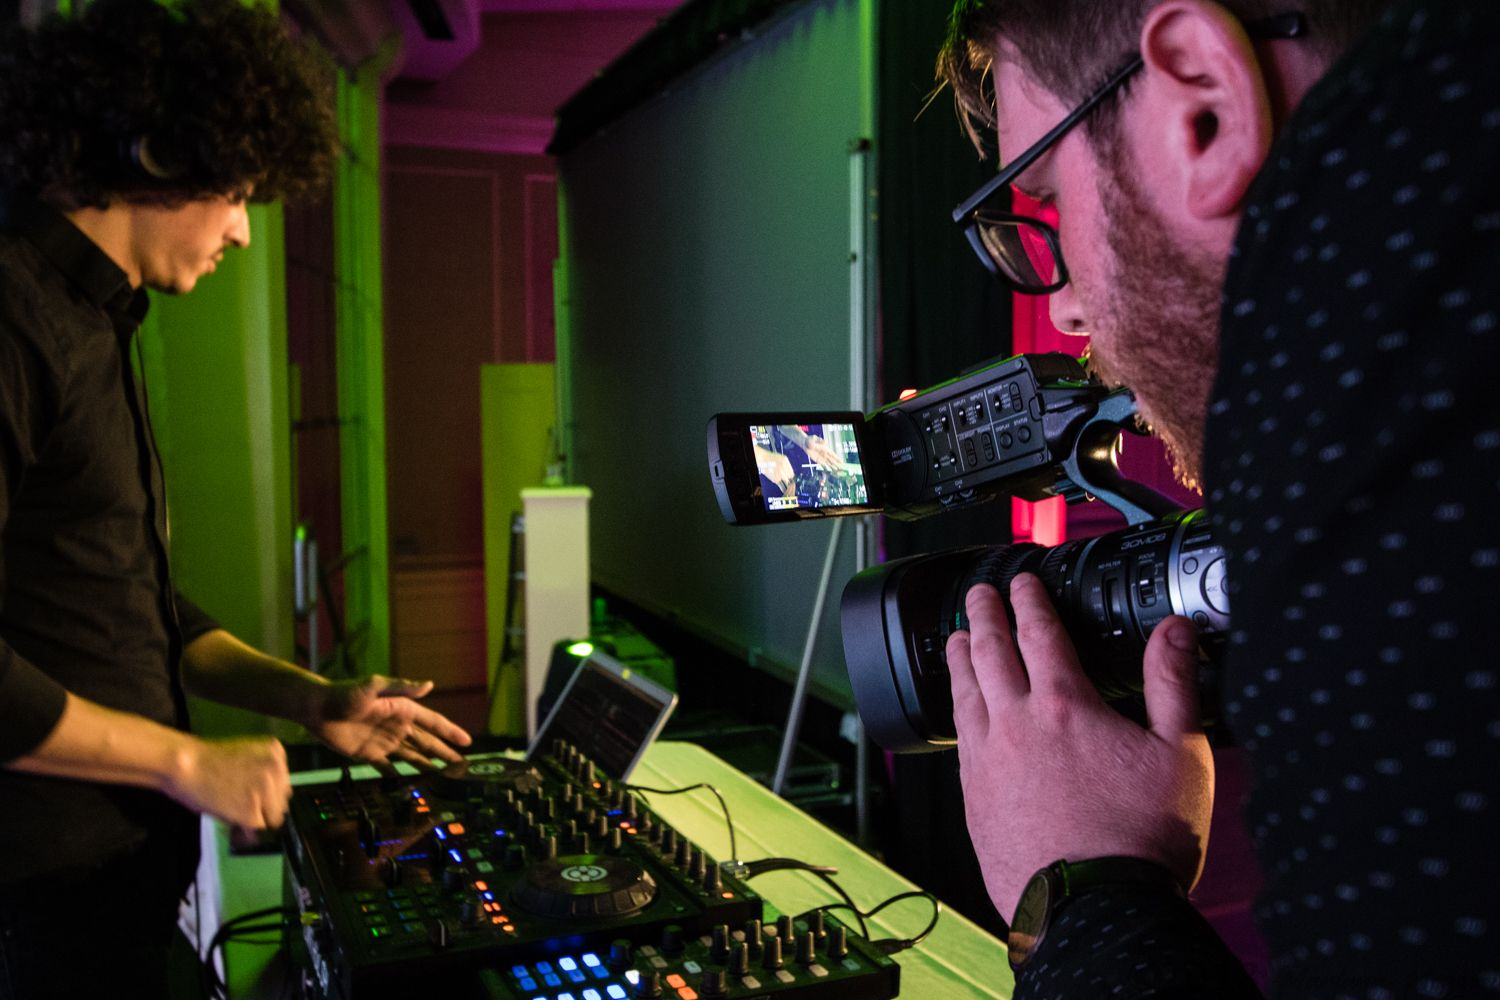 Cameraman shooting video of a DJ at an event